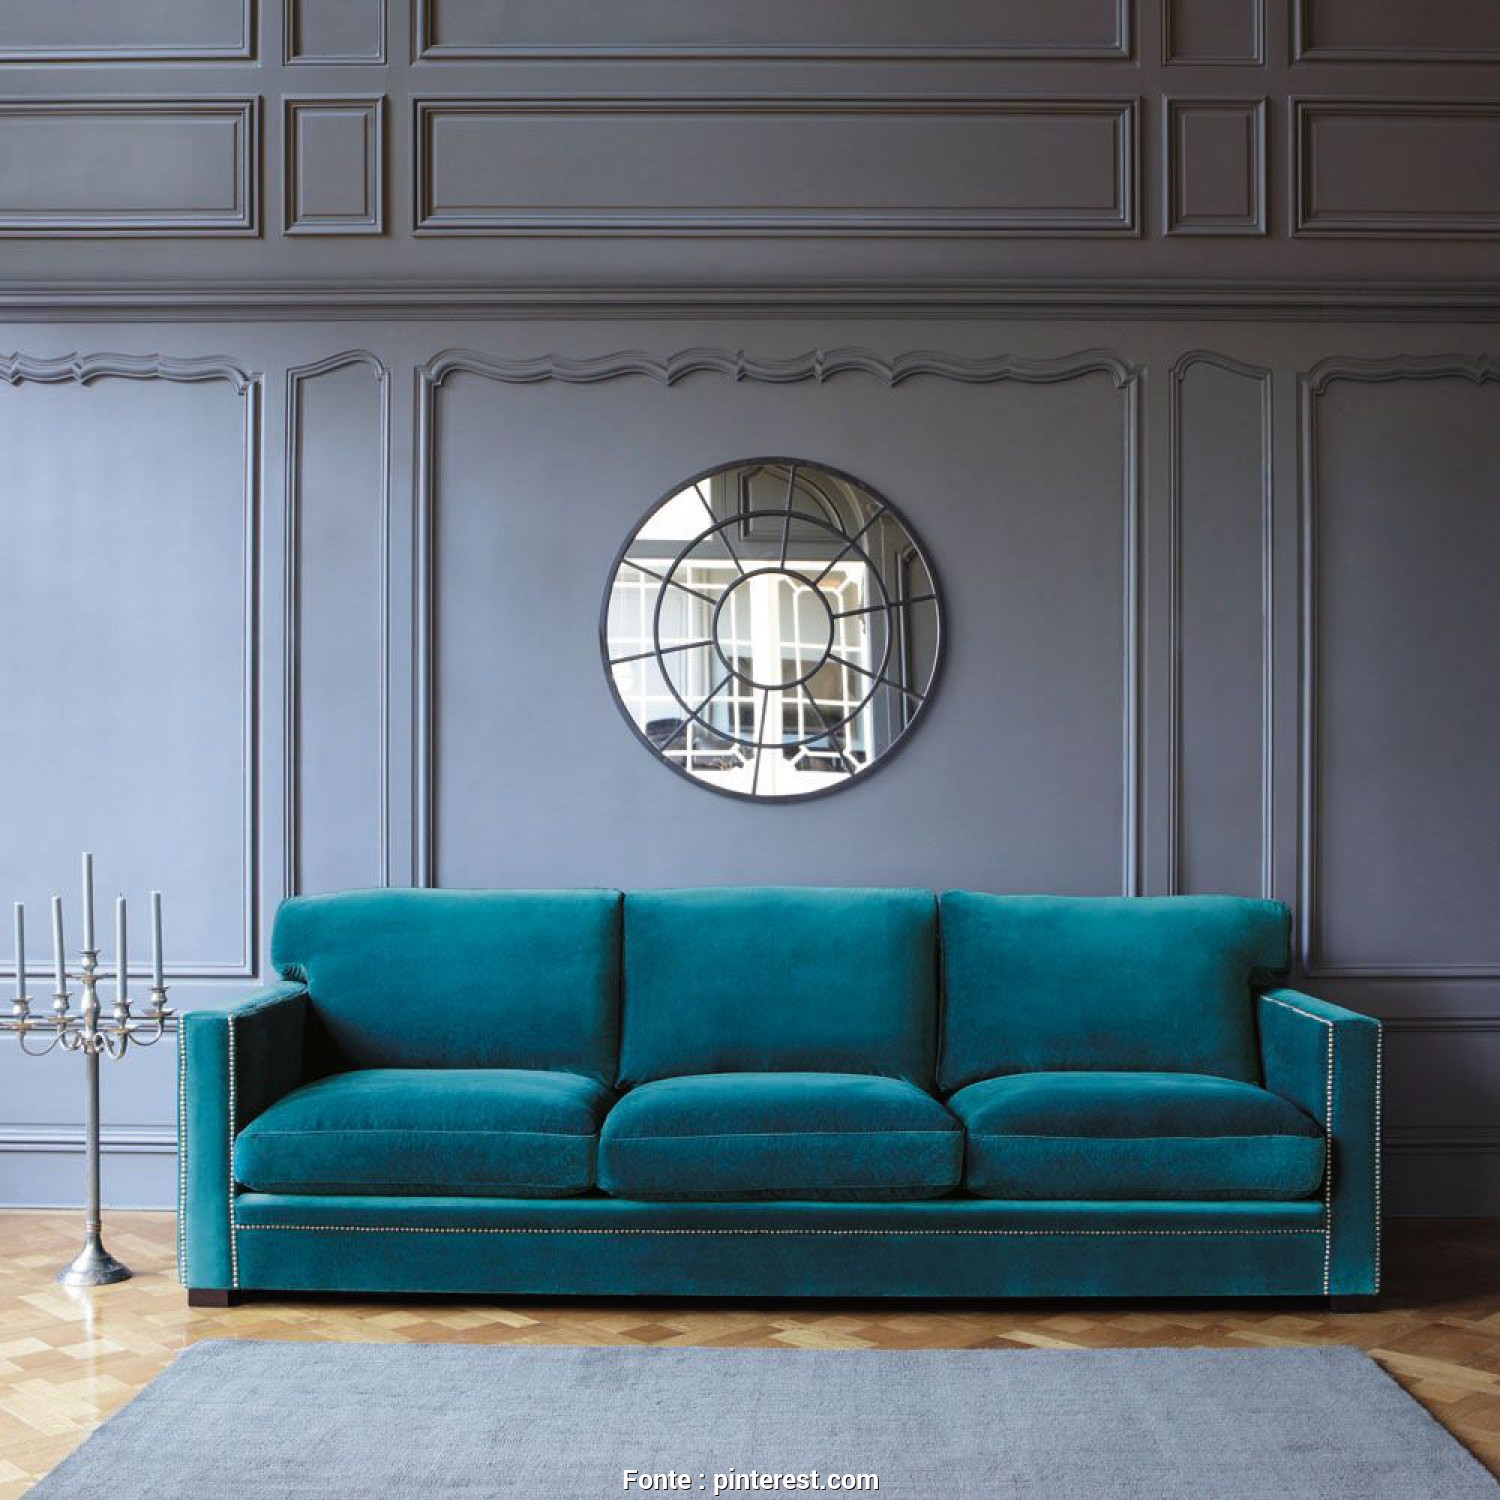 Divano Velluto Maison Du Monde, A Buon Mercato More Fabrics Loves This Blue Sofa Combined With That Purple Grey Wall @ Maisonsdumonde. Home Interior Furnishing, Wall Colour Inspiration